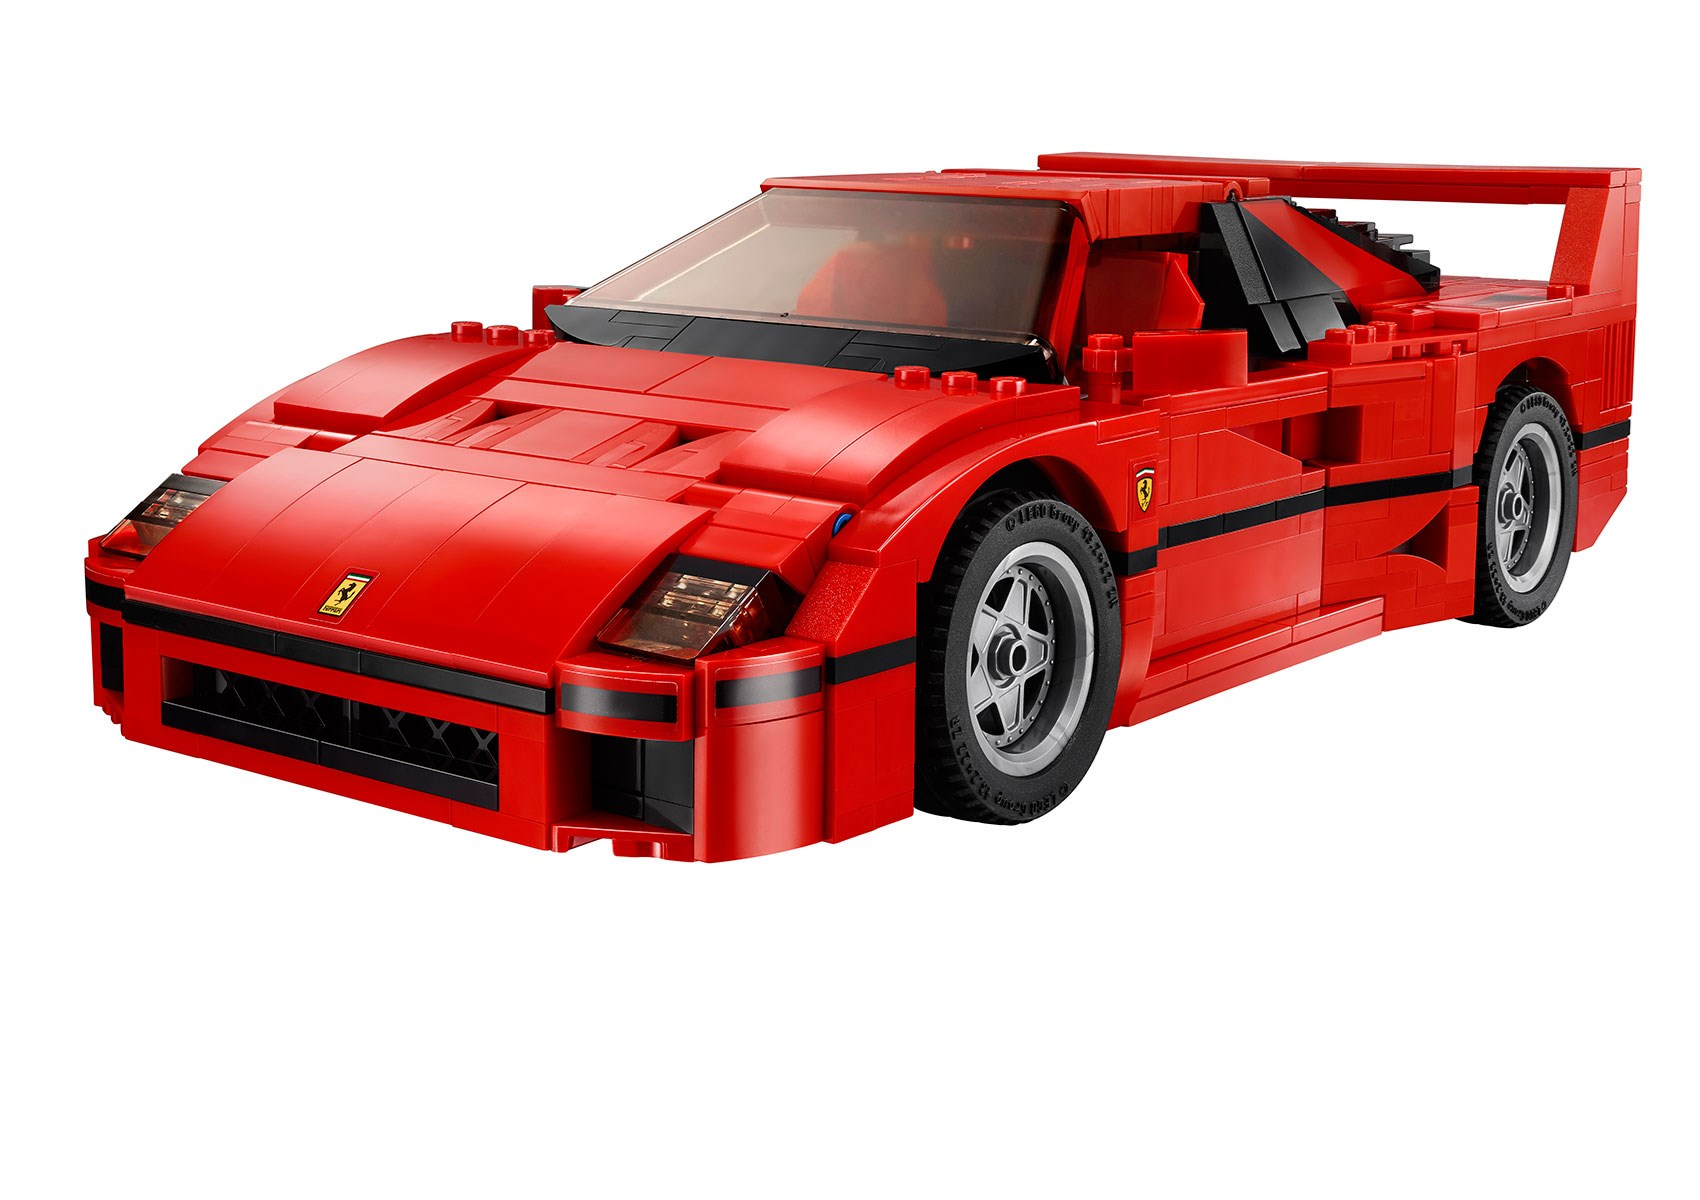 lego ferrari f40 announced iconic 1987 supercar s blockbuster toy by car magazine. Black Bedroom Furniture Sets. Home Design Ideas